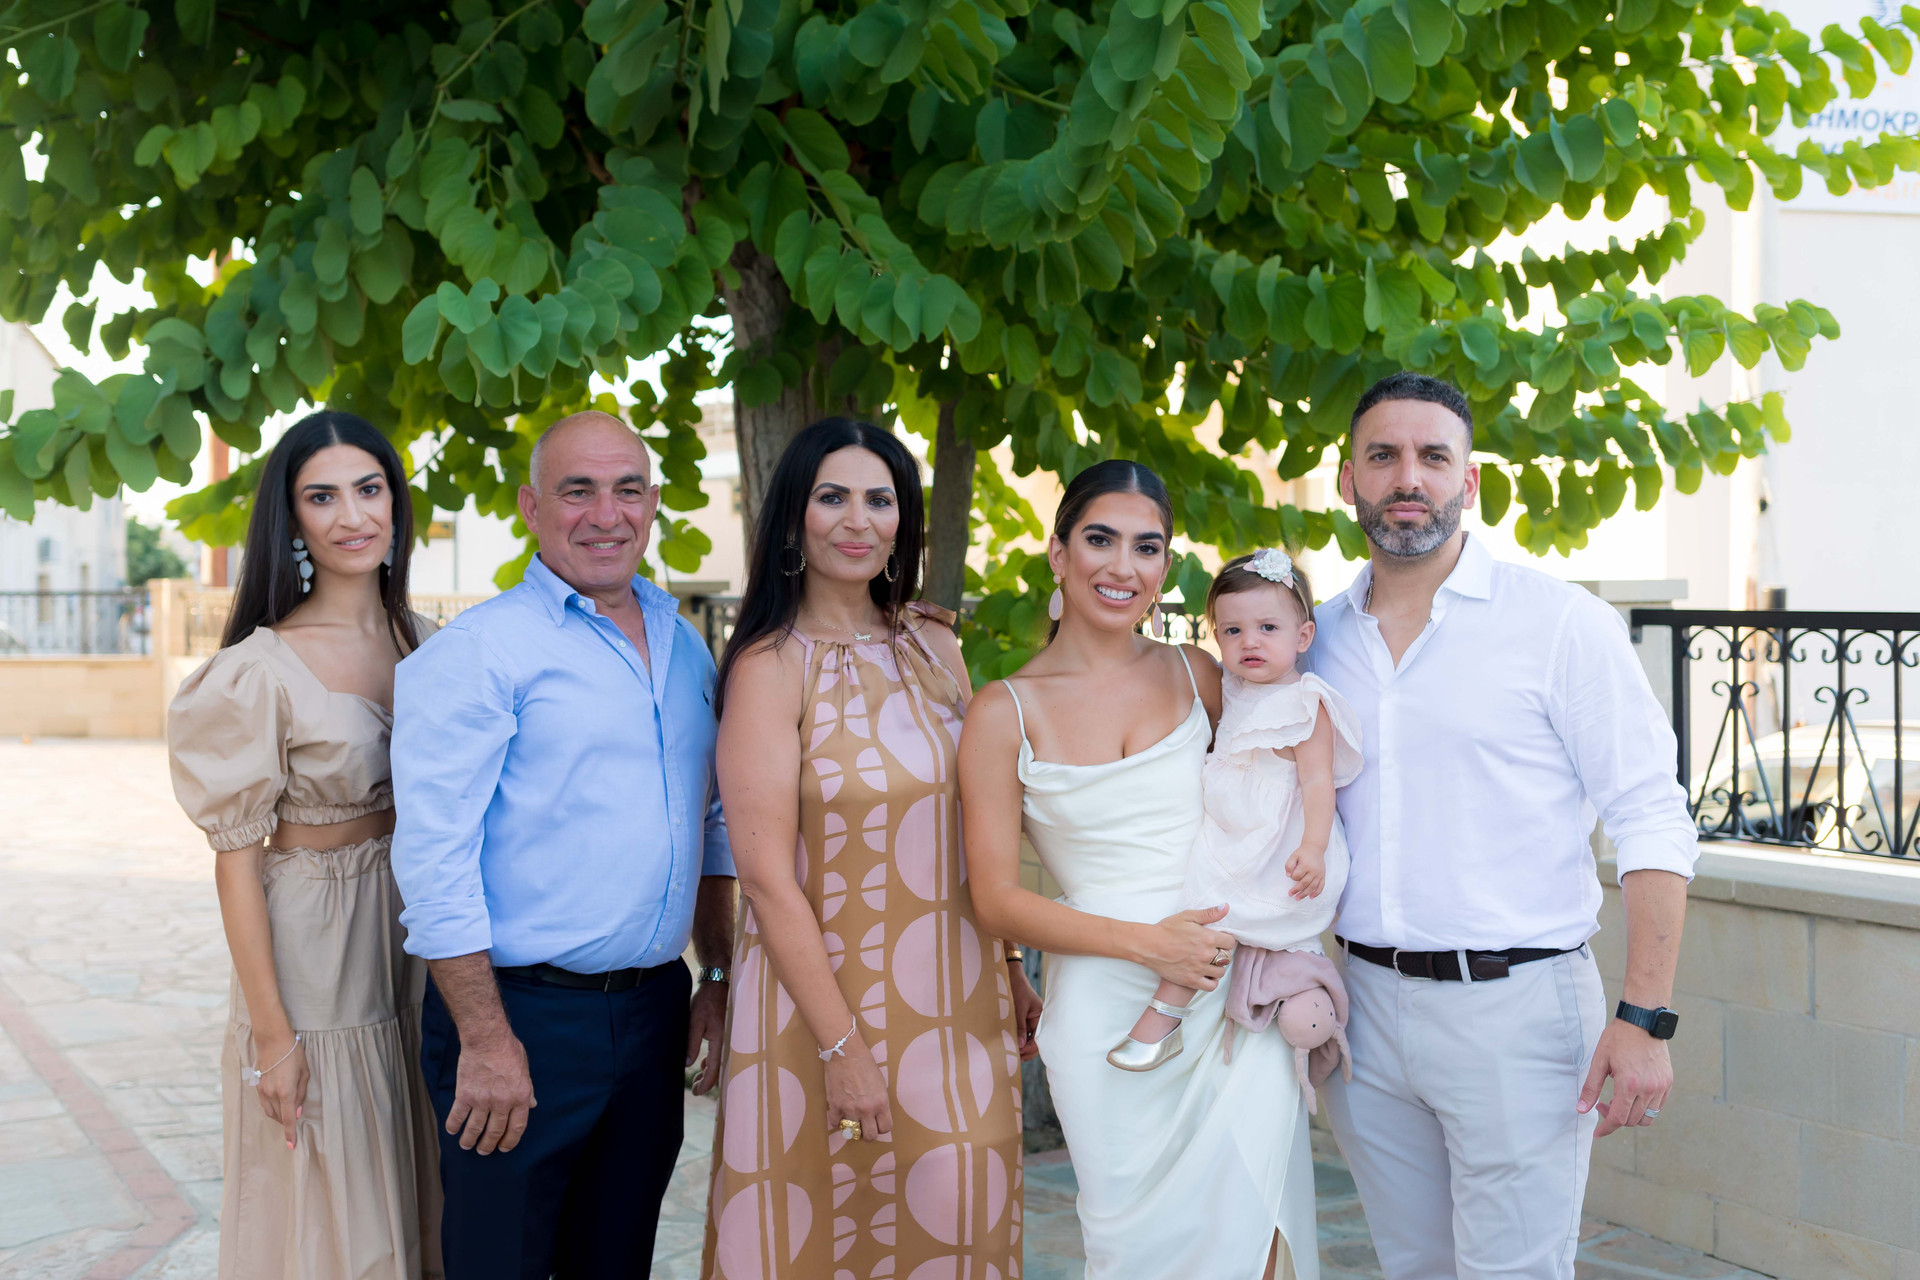 Georgias Christening 1808202033.jpg